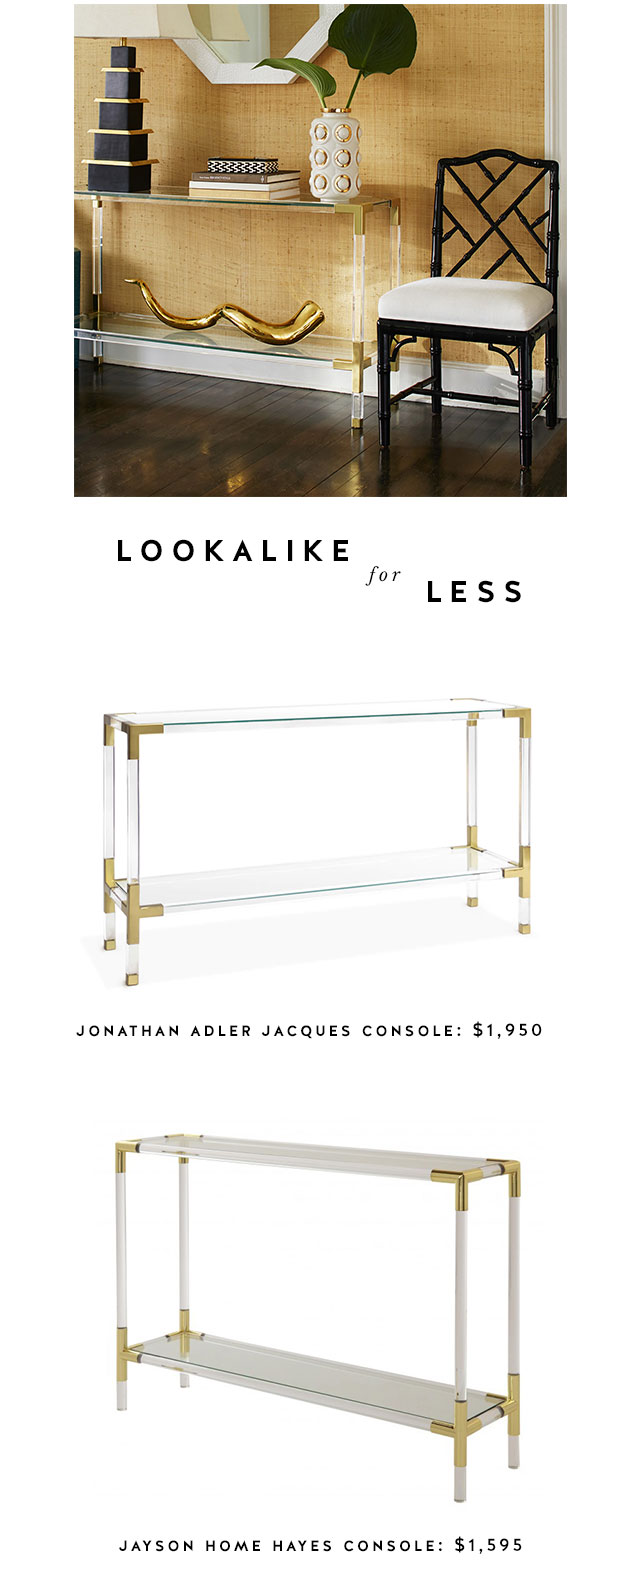 lookalike-for-less-jonathan-adler-jacques-console-2